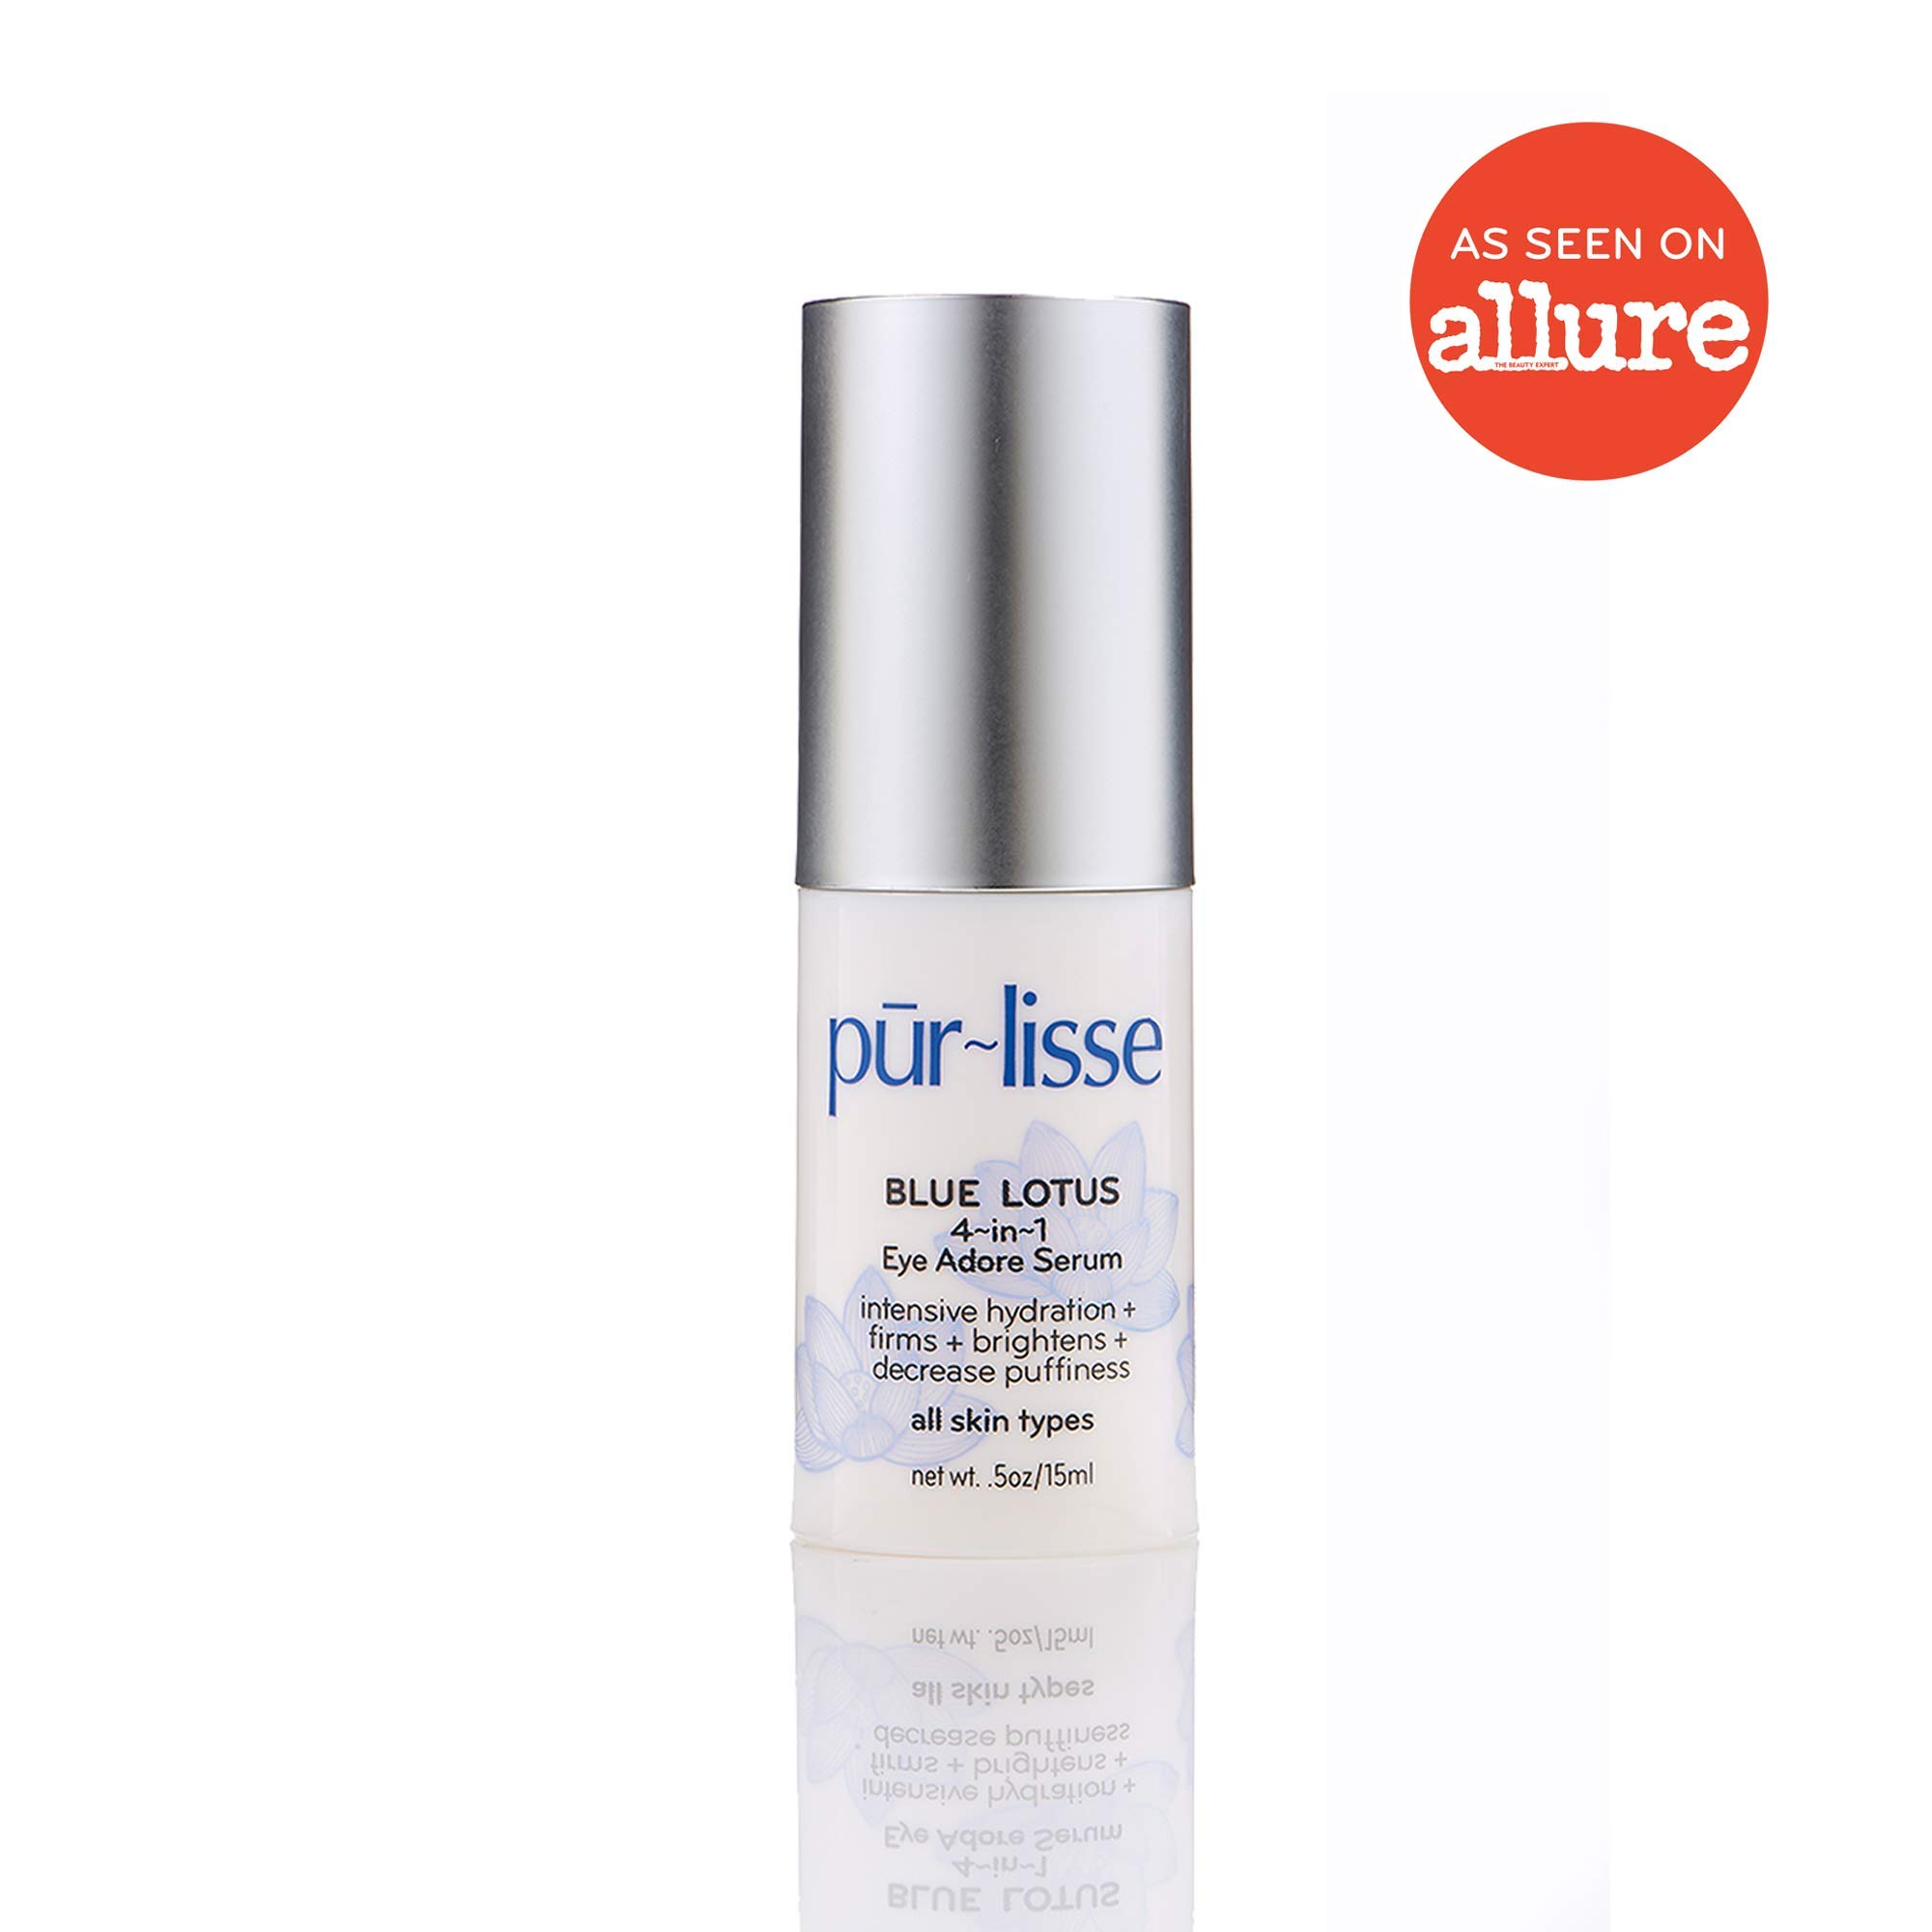 purlisse Blue Lotus 4-in-1 Eye Adore Serum - Under Eye Cream for Dark Circles - Natural Eye Gel for Fine Lines and Puffiness - Brightening Eye Serum for All Skin Types, 0.5 Ounce